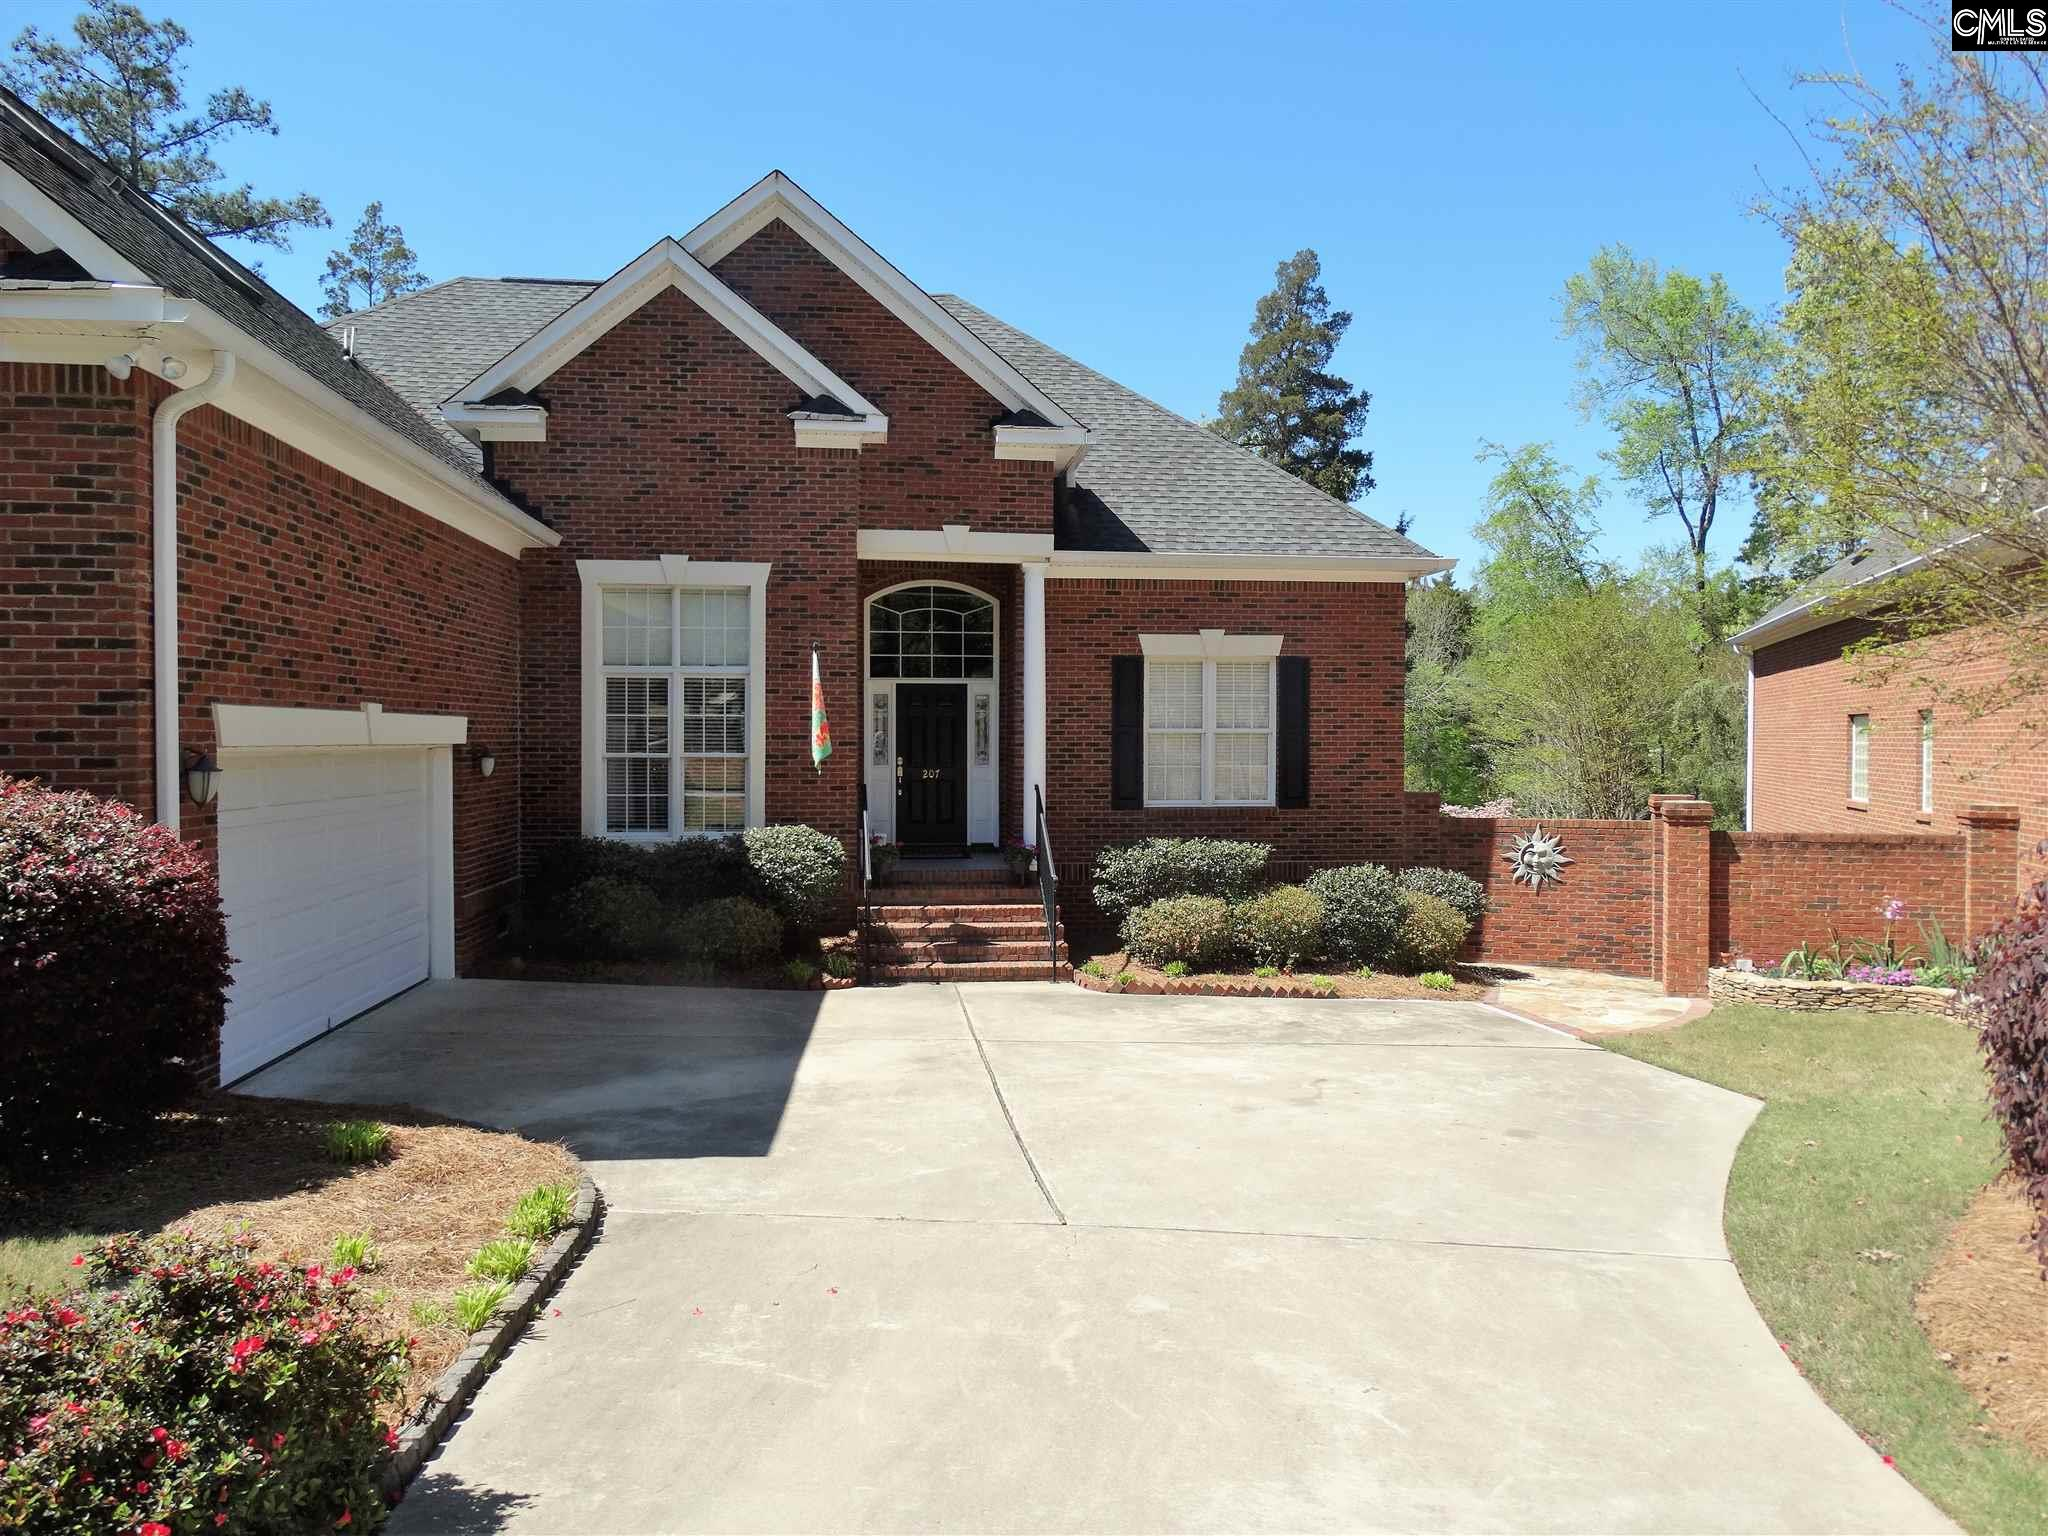 207 Savannah Branch Irmo, SC 29063